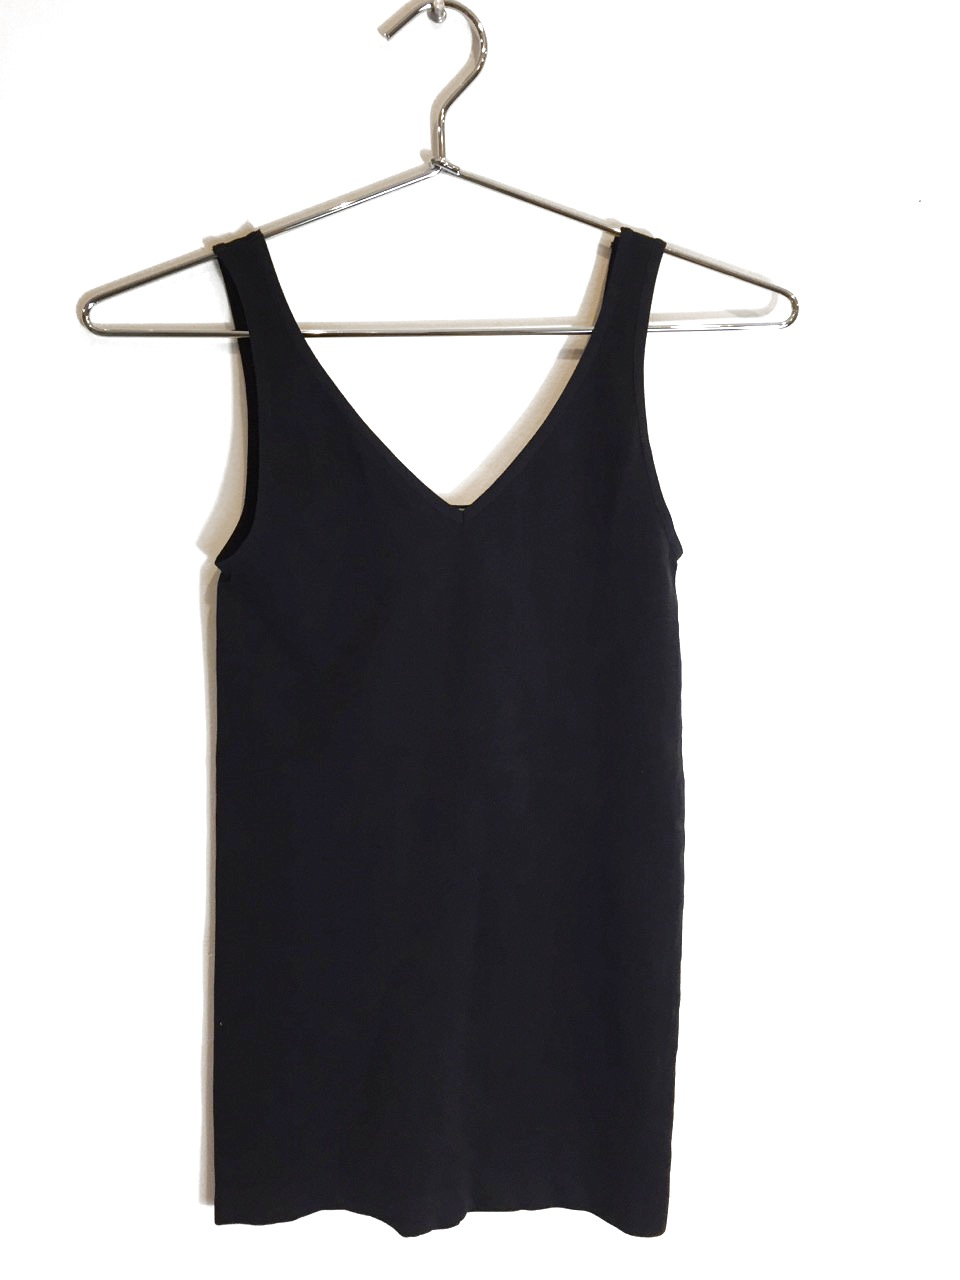 New-Anthropologie-By-Eloise-Seamless-Reversible-Soft-Layering-Tank-Top-Cami-24 thumbnail 15